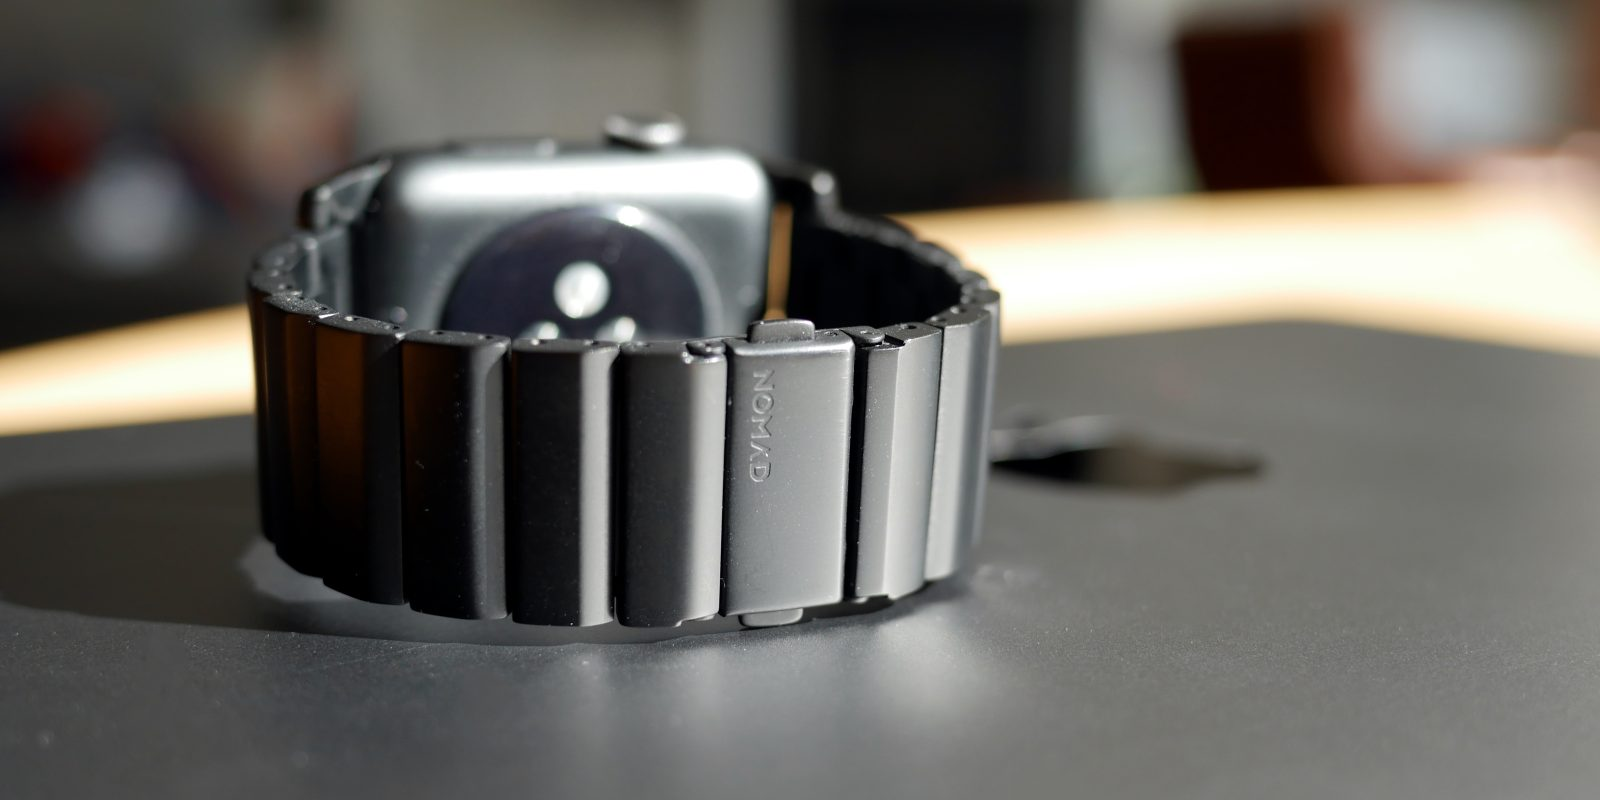 Nomad Titanium Band Review: The most comfortable link Apple Watch band I've worn